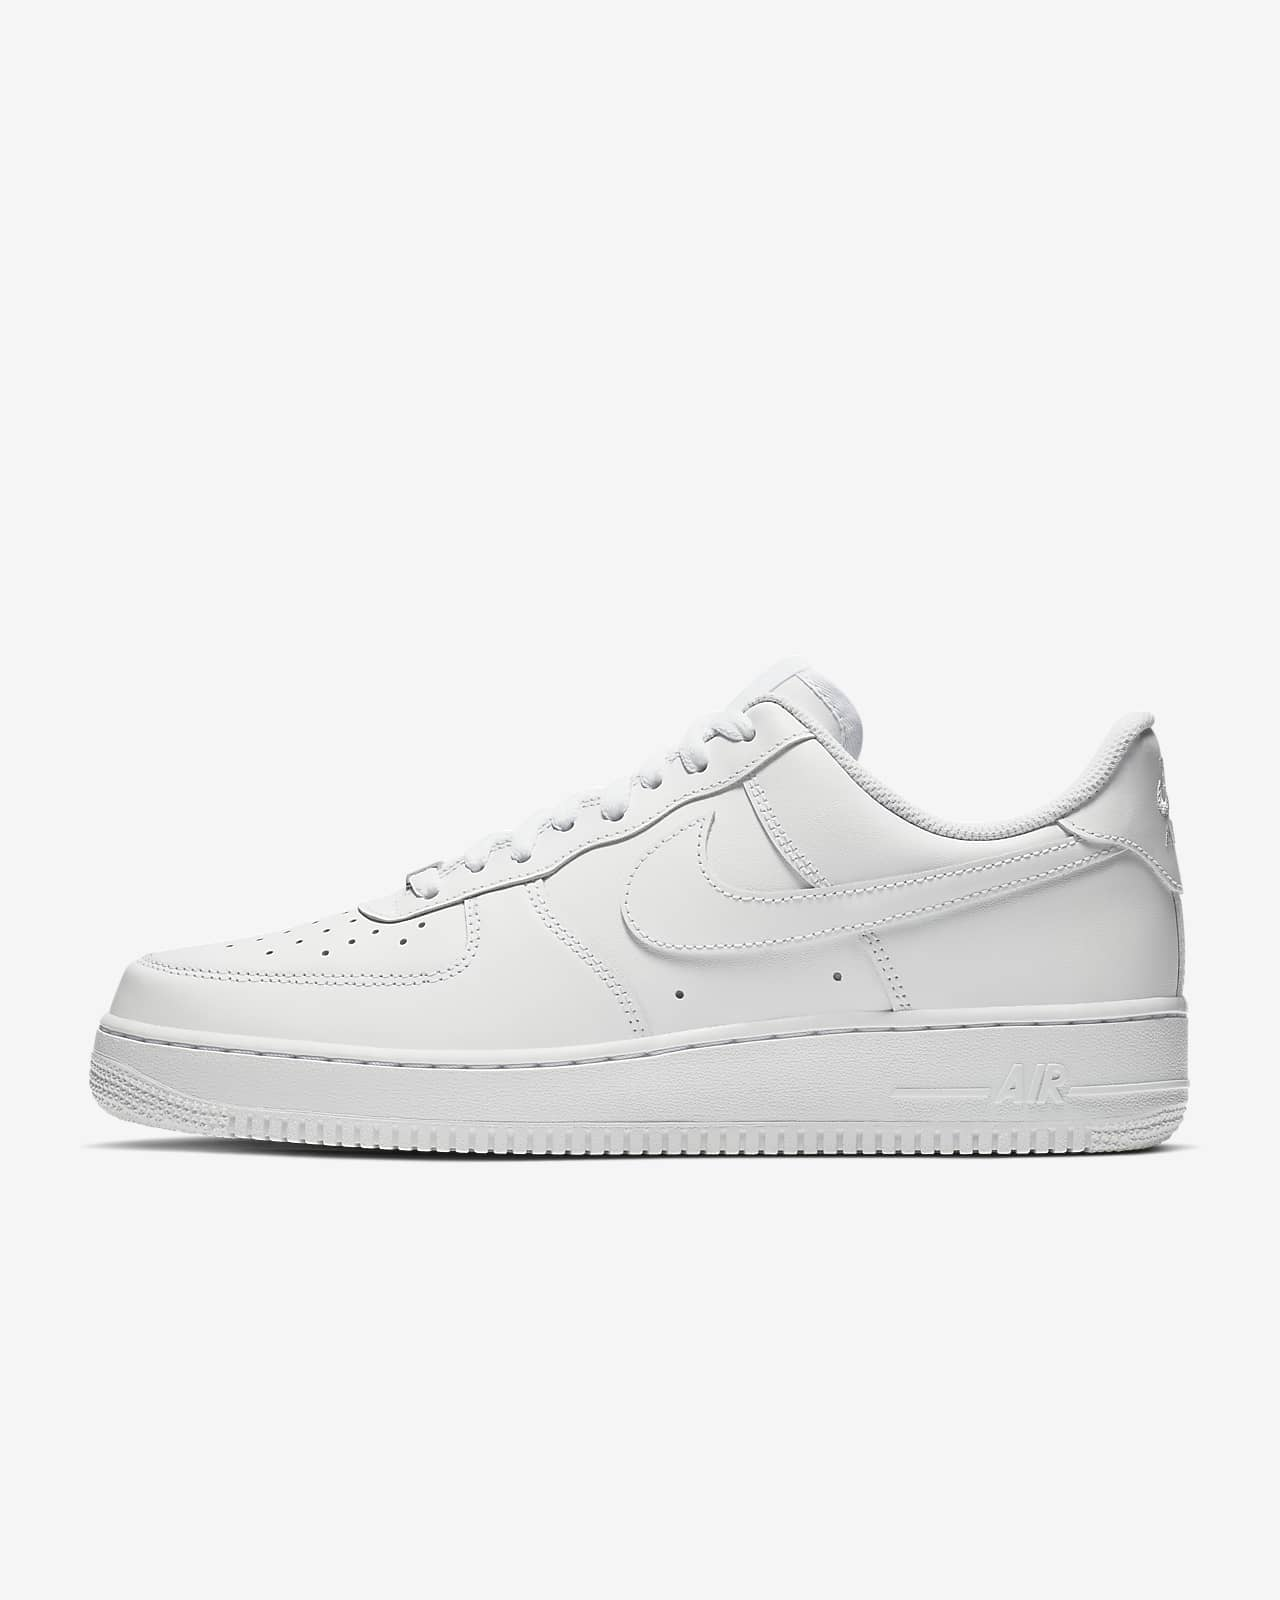 veredicto Gruñido batalla  Nike Air Force 1 '07 Men's Shoe. Nike LU